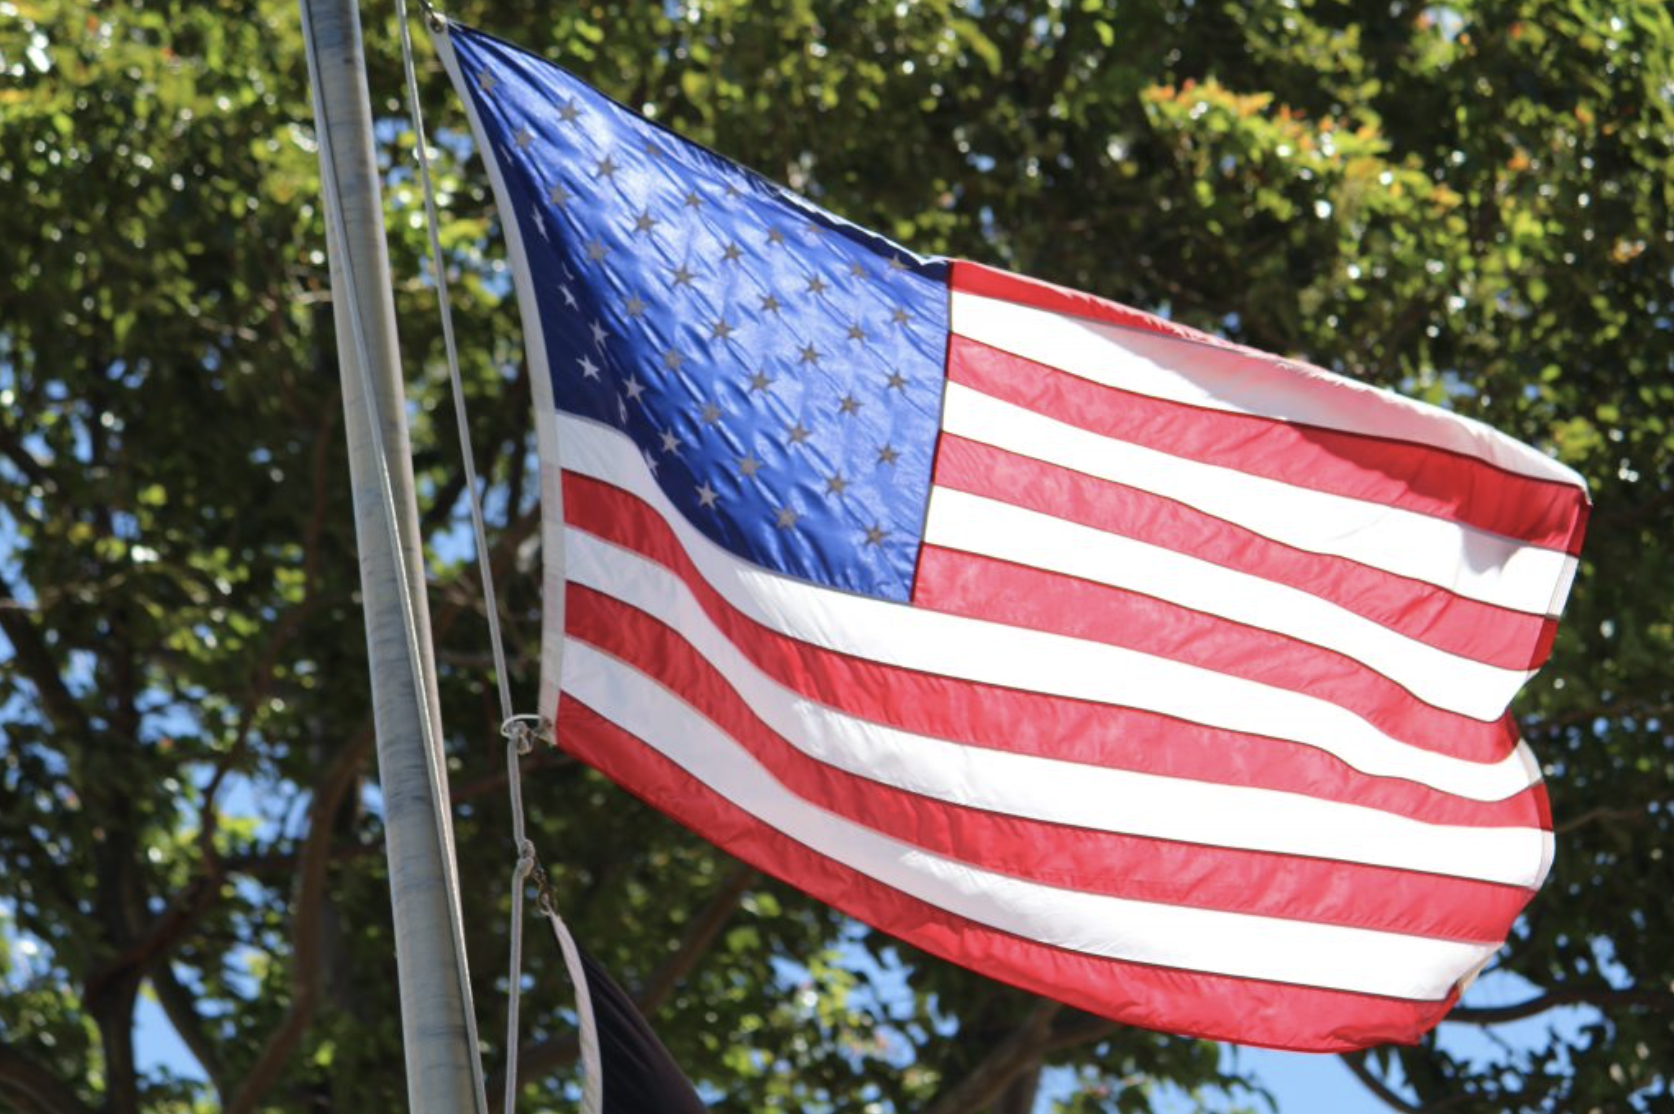 Flags Lowered to Honor Victims in Colorado Shooting